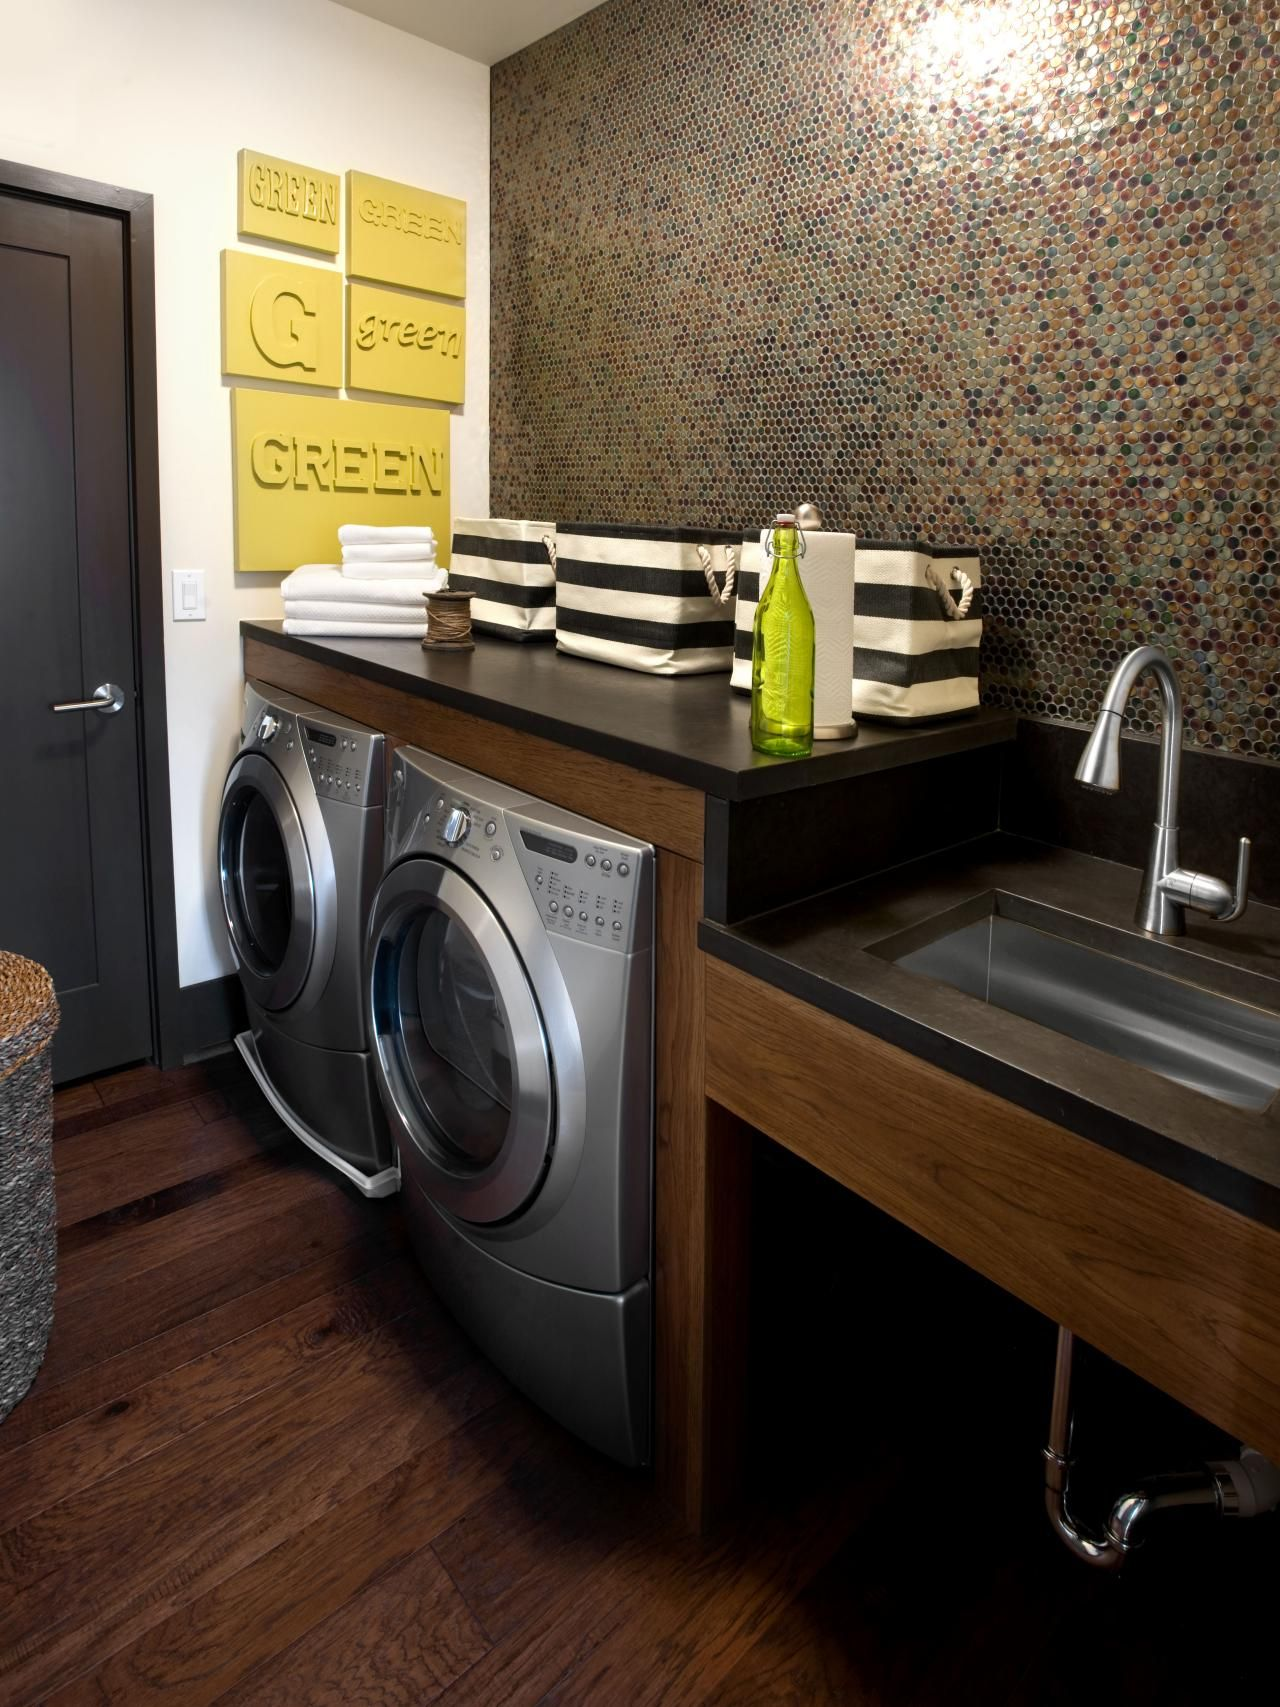 Laundry Room With A Dark Penny Wall Design